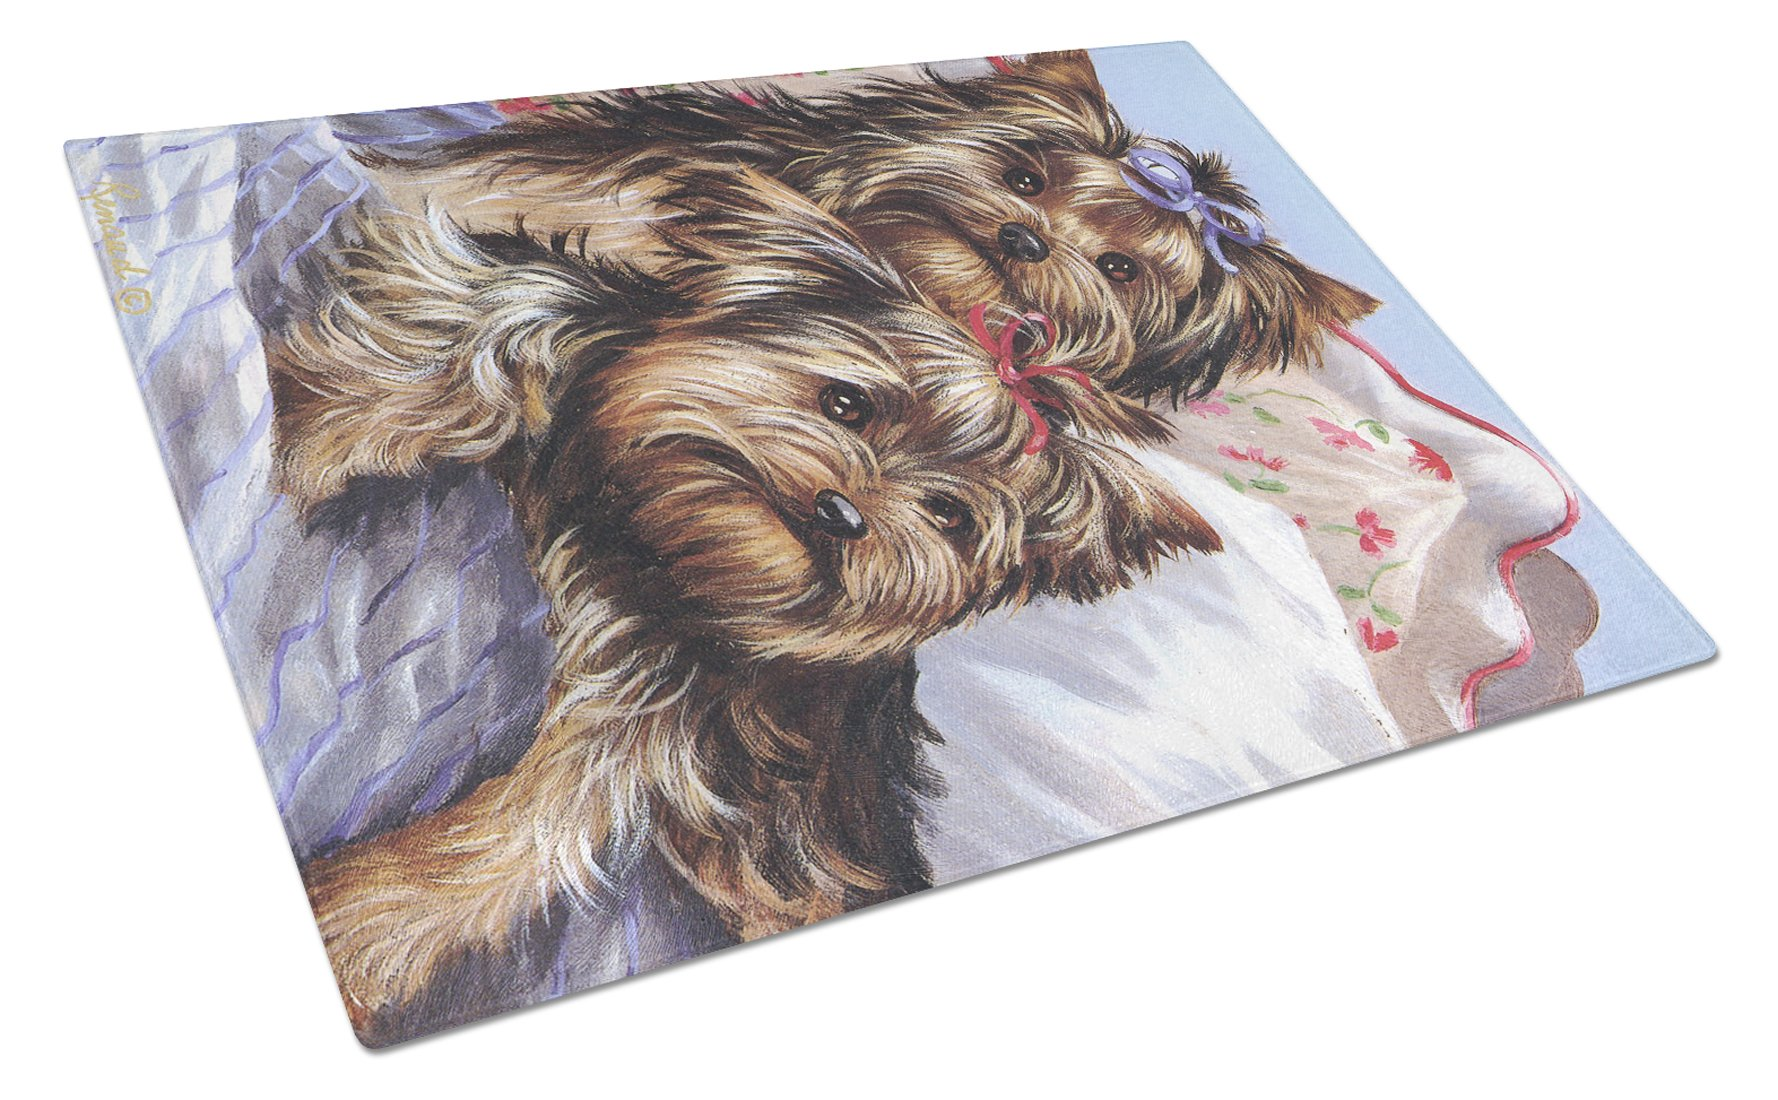 Yorkie Bed Bugs Glass Cutting Board Large PPP3240LCB by Caroline's Treasures